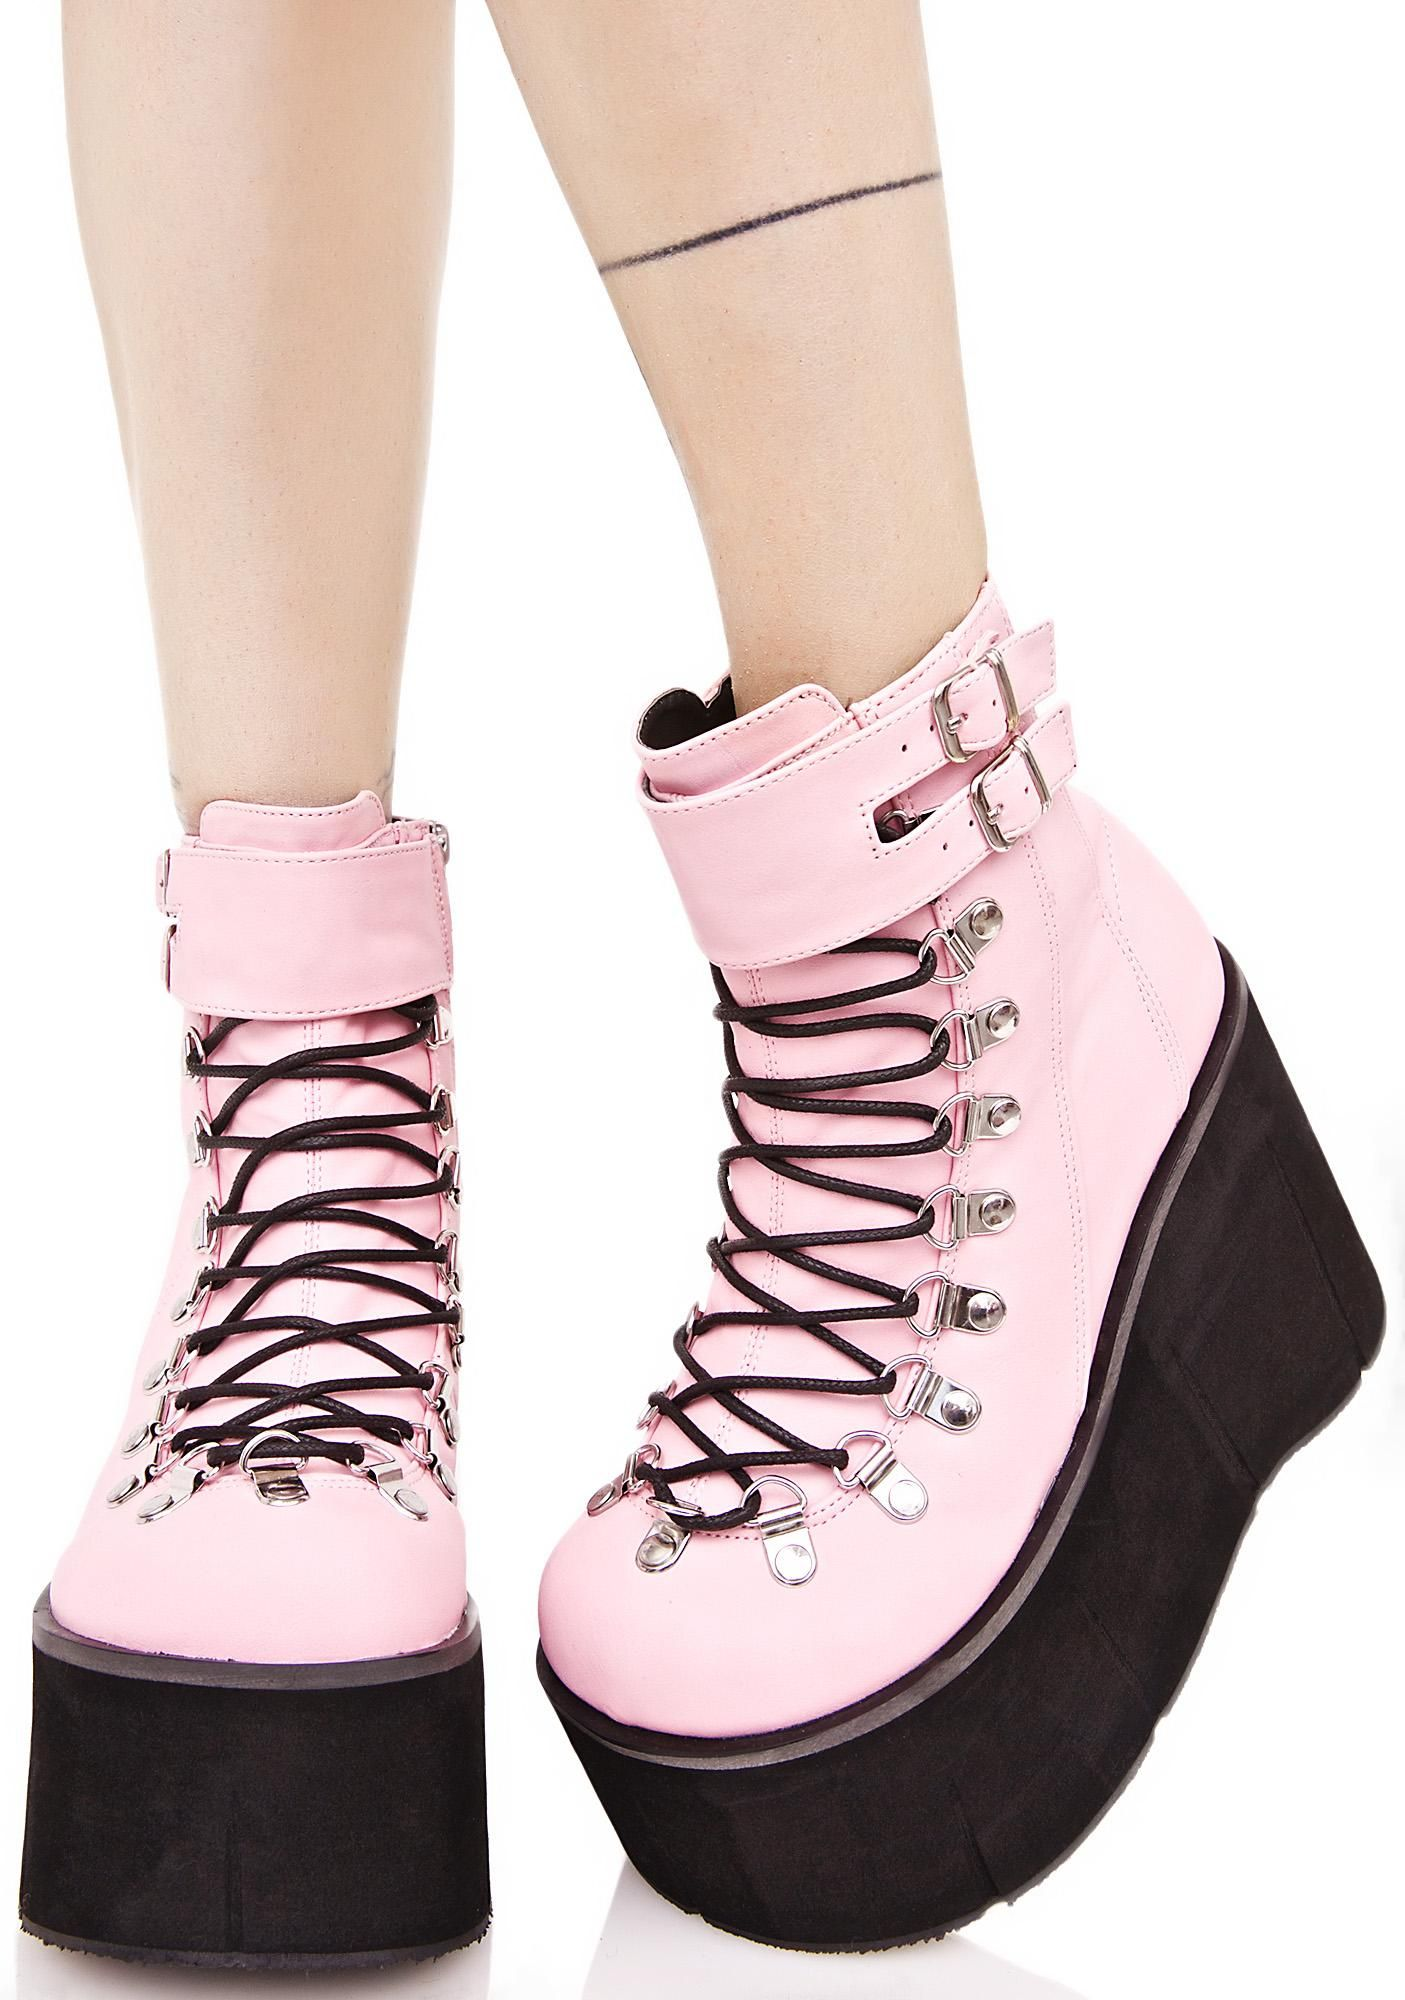 Sweetie Kera Lace Up Platform Boots Fashion Dreamz